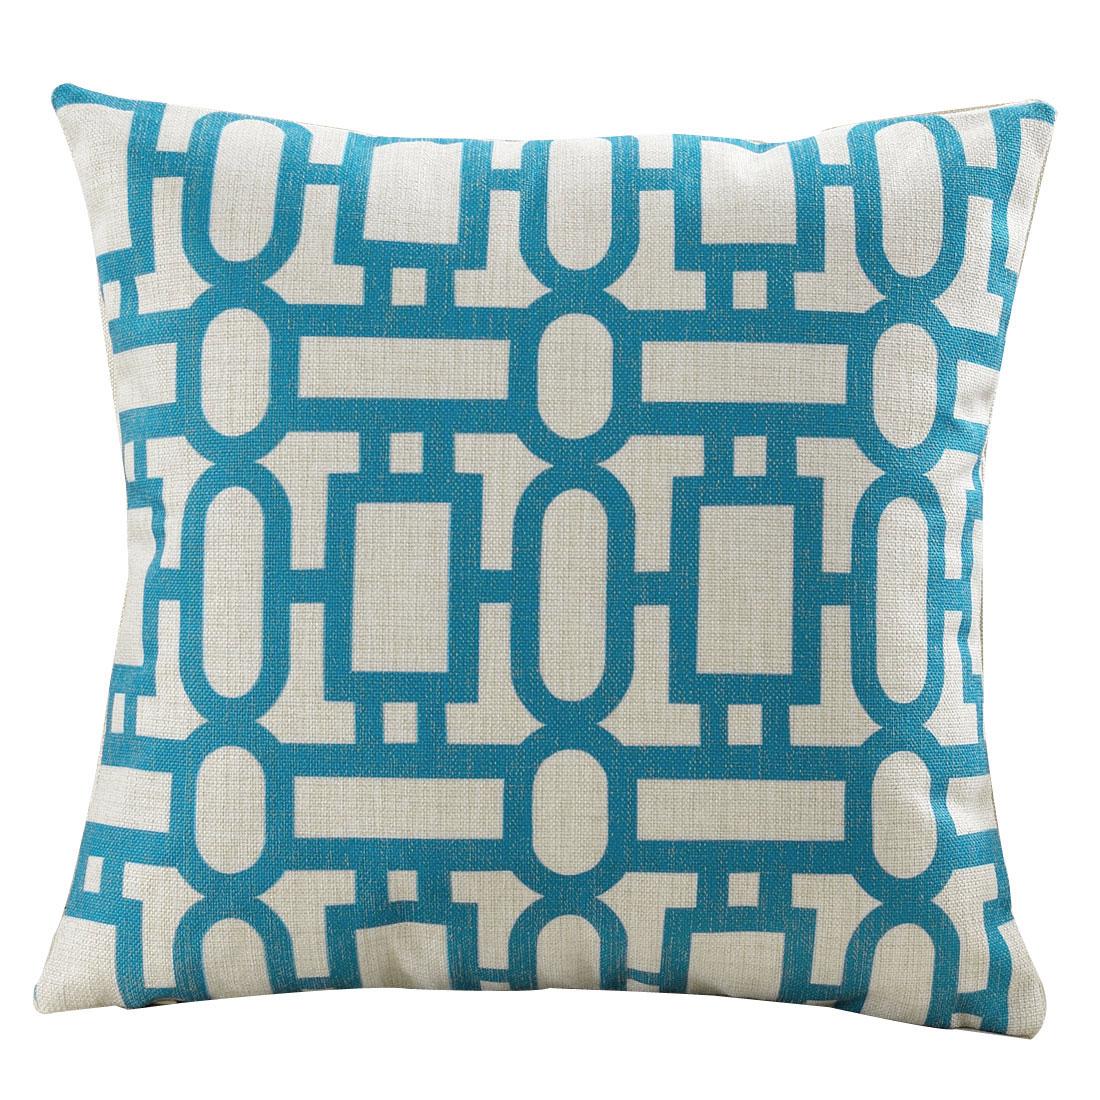 Couch Sofa Cotton Linen Pop Geometric Pattern Waist Throw Cushion Pillow Cover